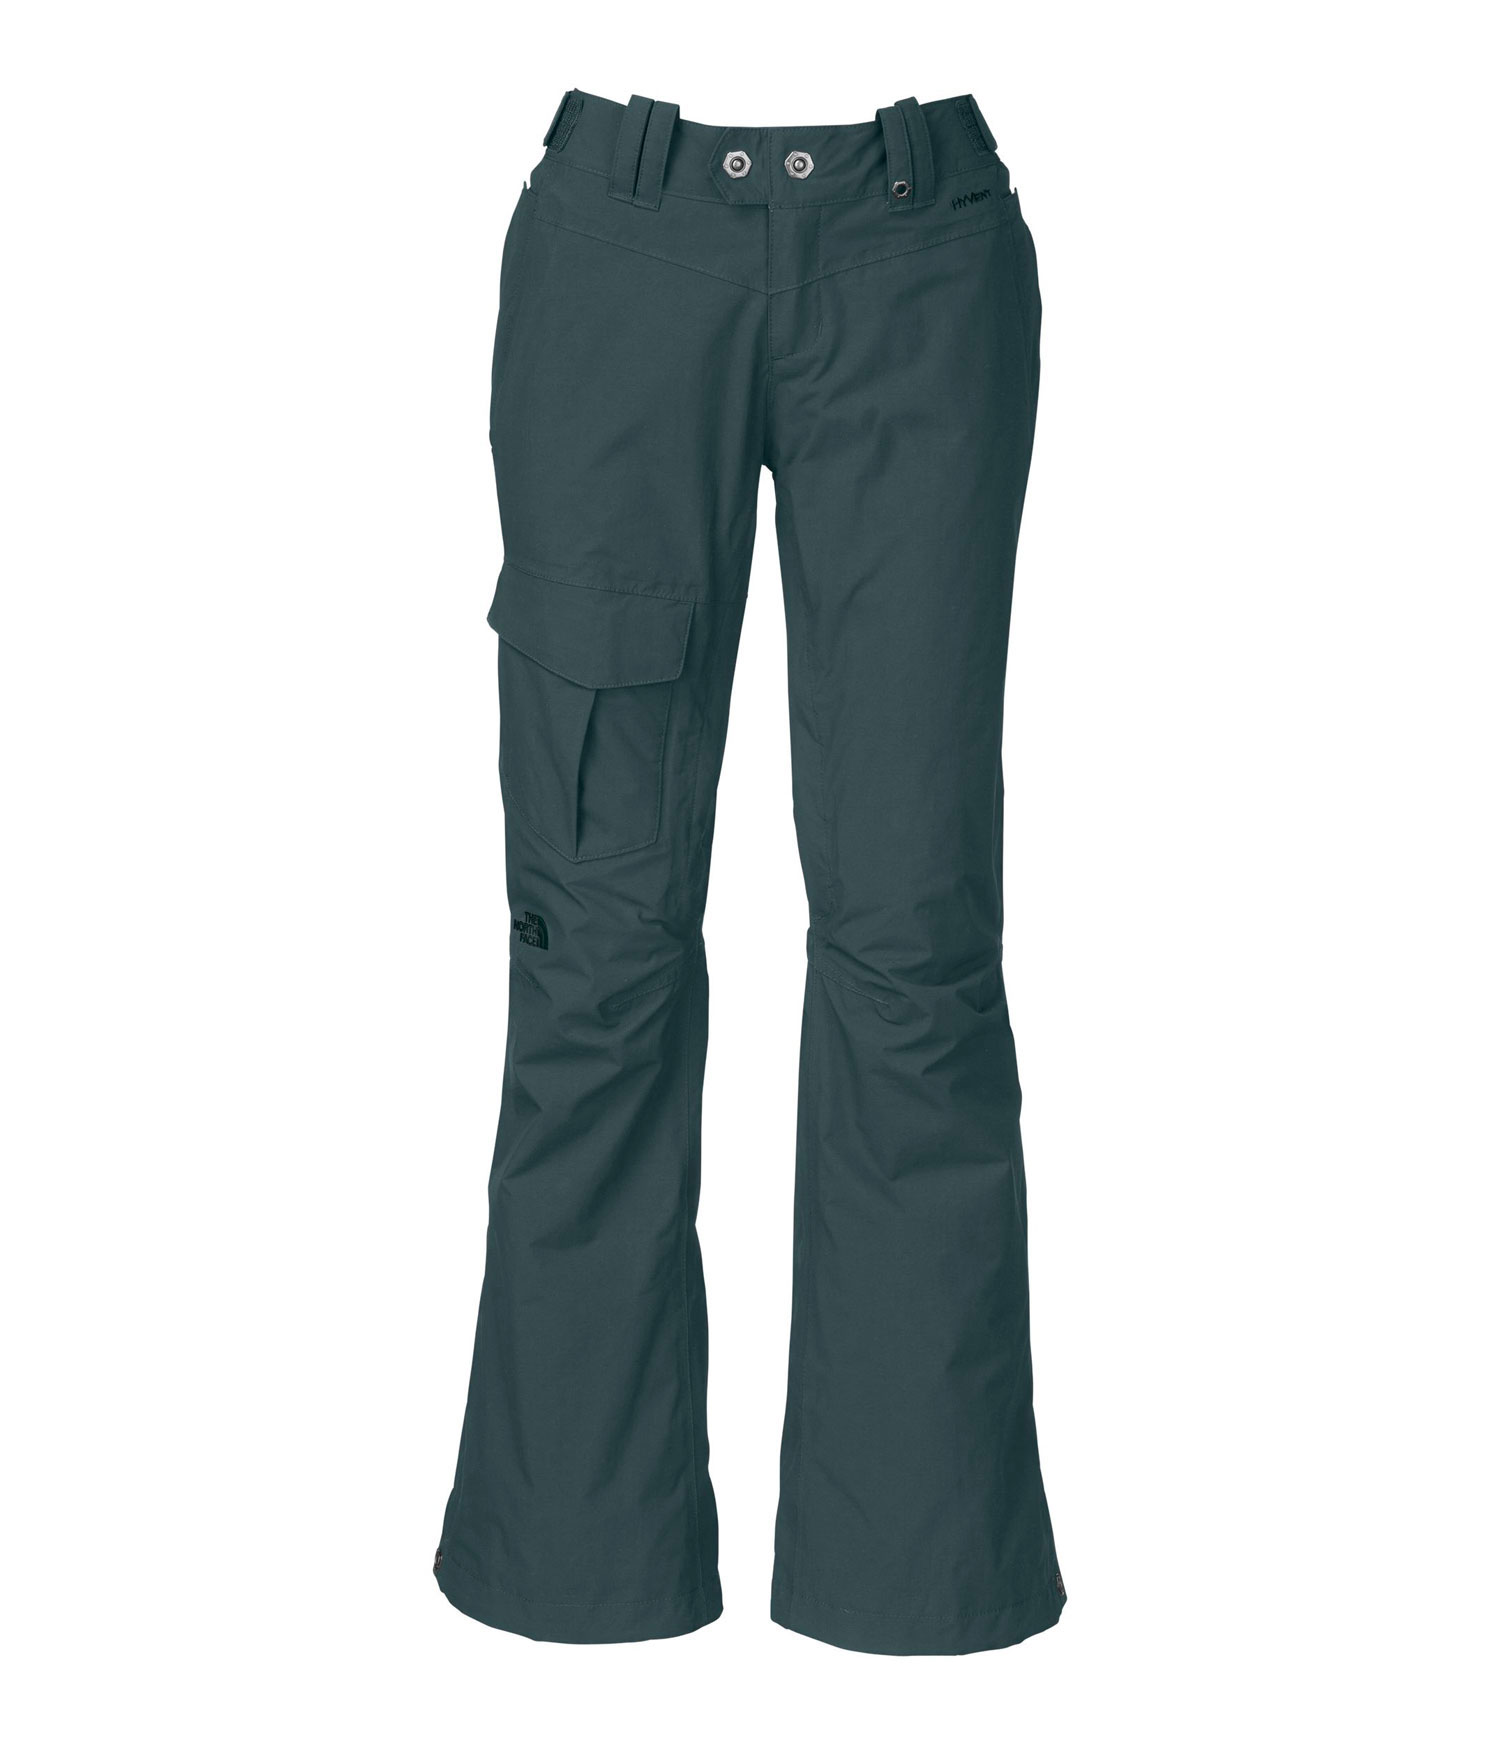 "Ski Insulated in the most important places-the seat and the knees-this waterproof, breathable pant offers a great feminine fit that will turn heads on the mountain. Key Features of The North Face Shawty Ski Pants: Avg Weight: 670 g (23.63 oz) Inseam: 31.5"" Fabric: shell: HyVent® 2L foxfaille Lining: taffeta Insulation: 60 g Heatseeker™ Adjustable waist tabs Handwarmer zip pockets Inner thigh vents with mesh gussets Thigh pocket Articulated knees StretchVent ™ gaiter with gripper elastic Reinforced cuffs Chimney Venting™ system - $111.95"